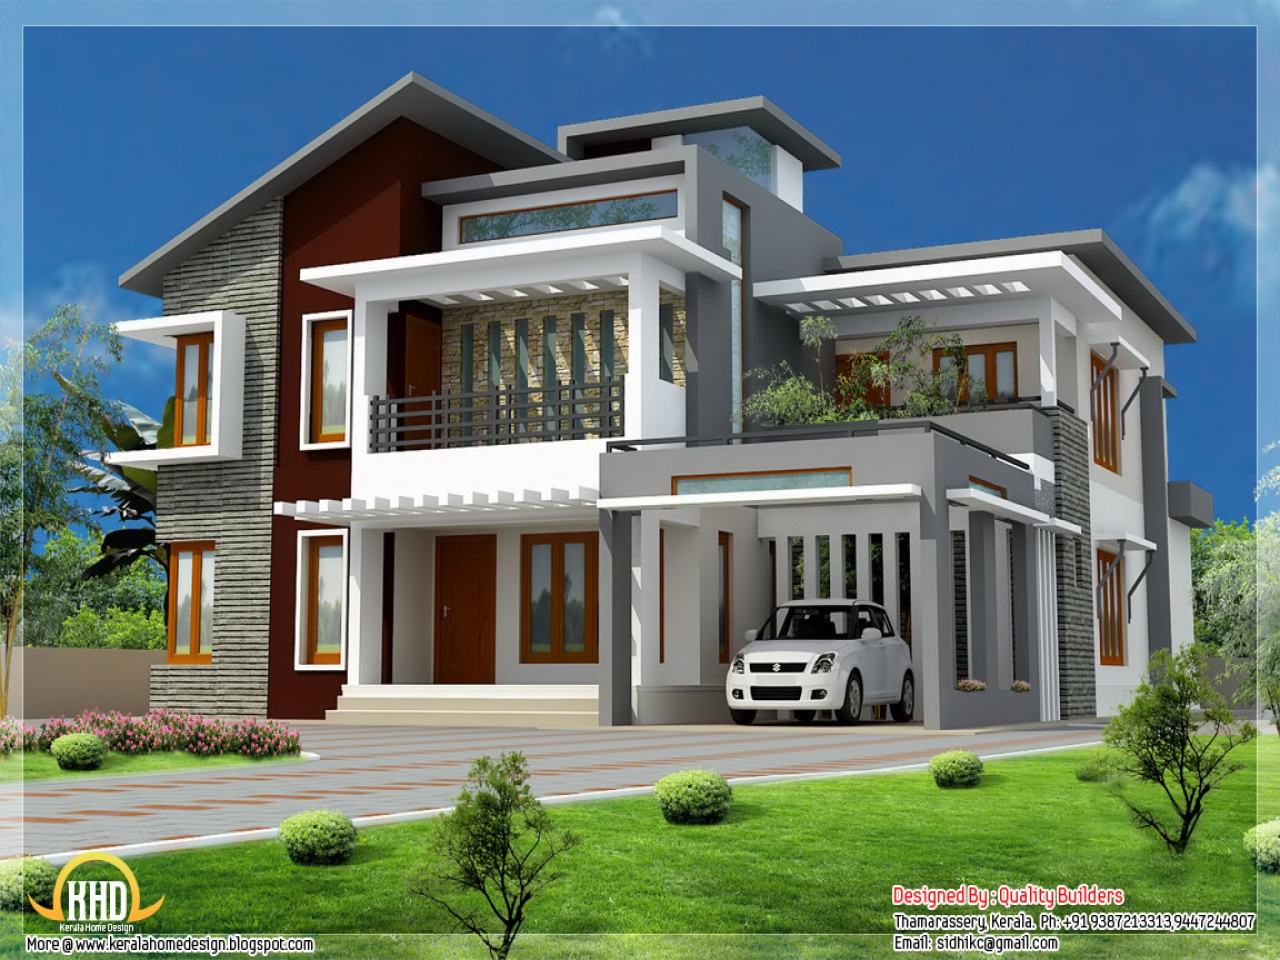 Modern style house design modern tropical house design for Modern house decor